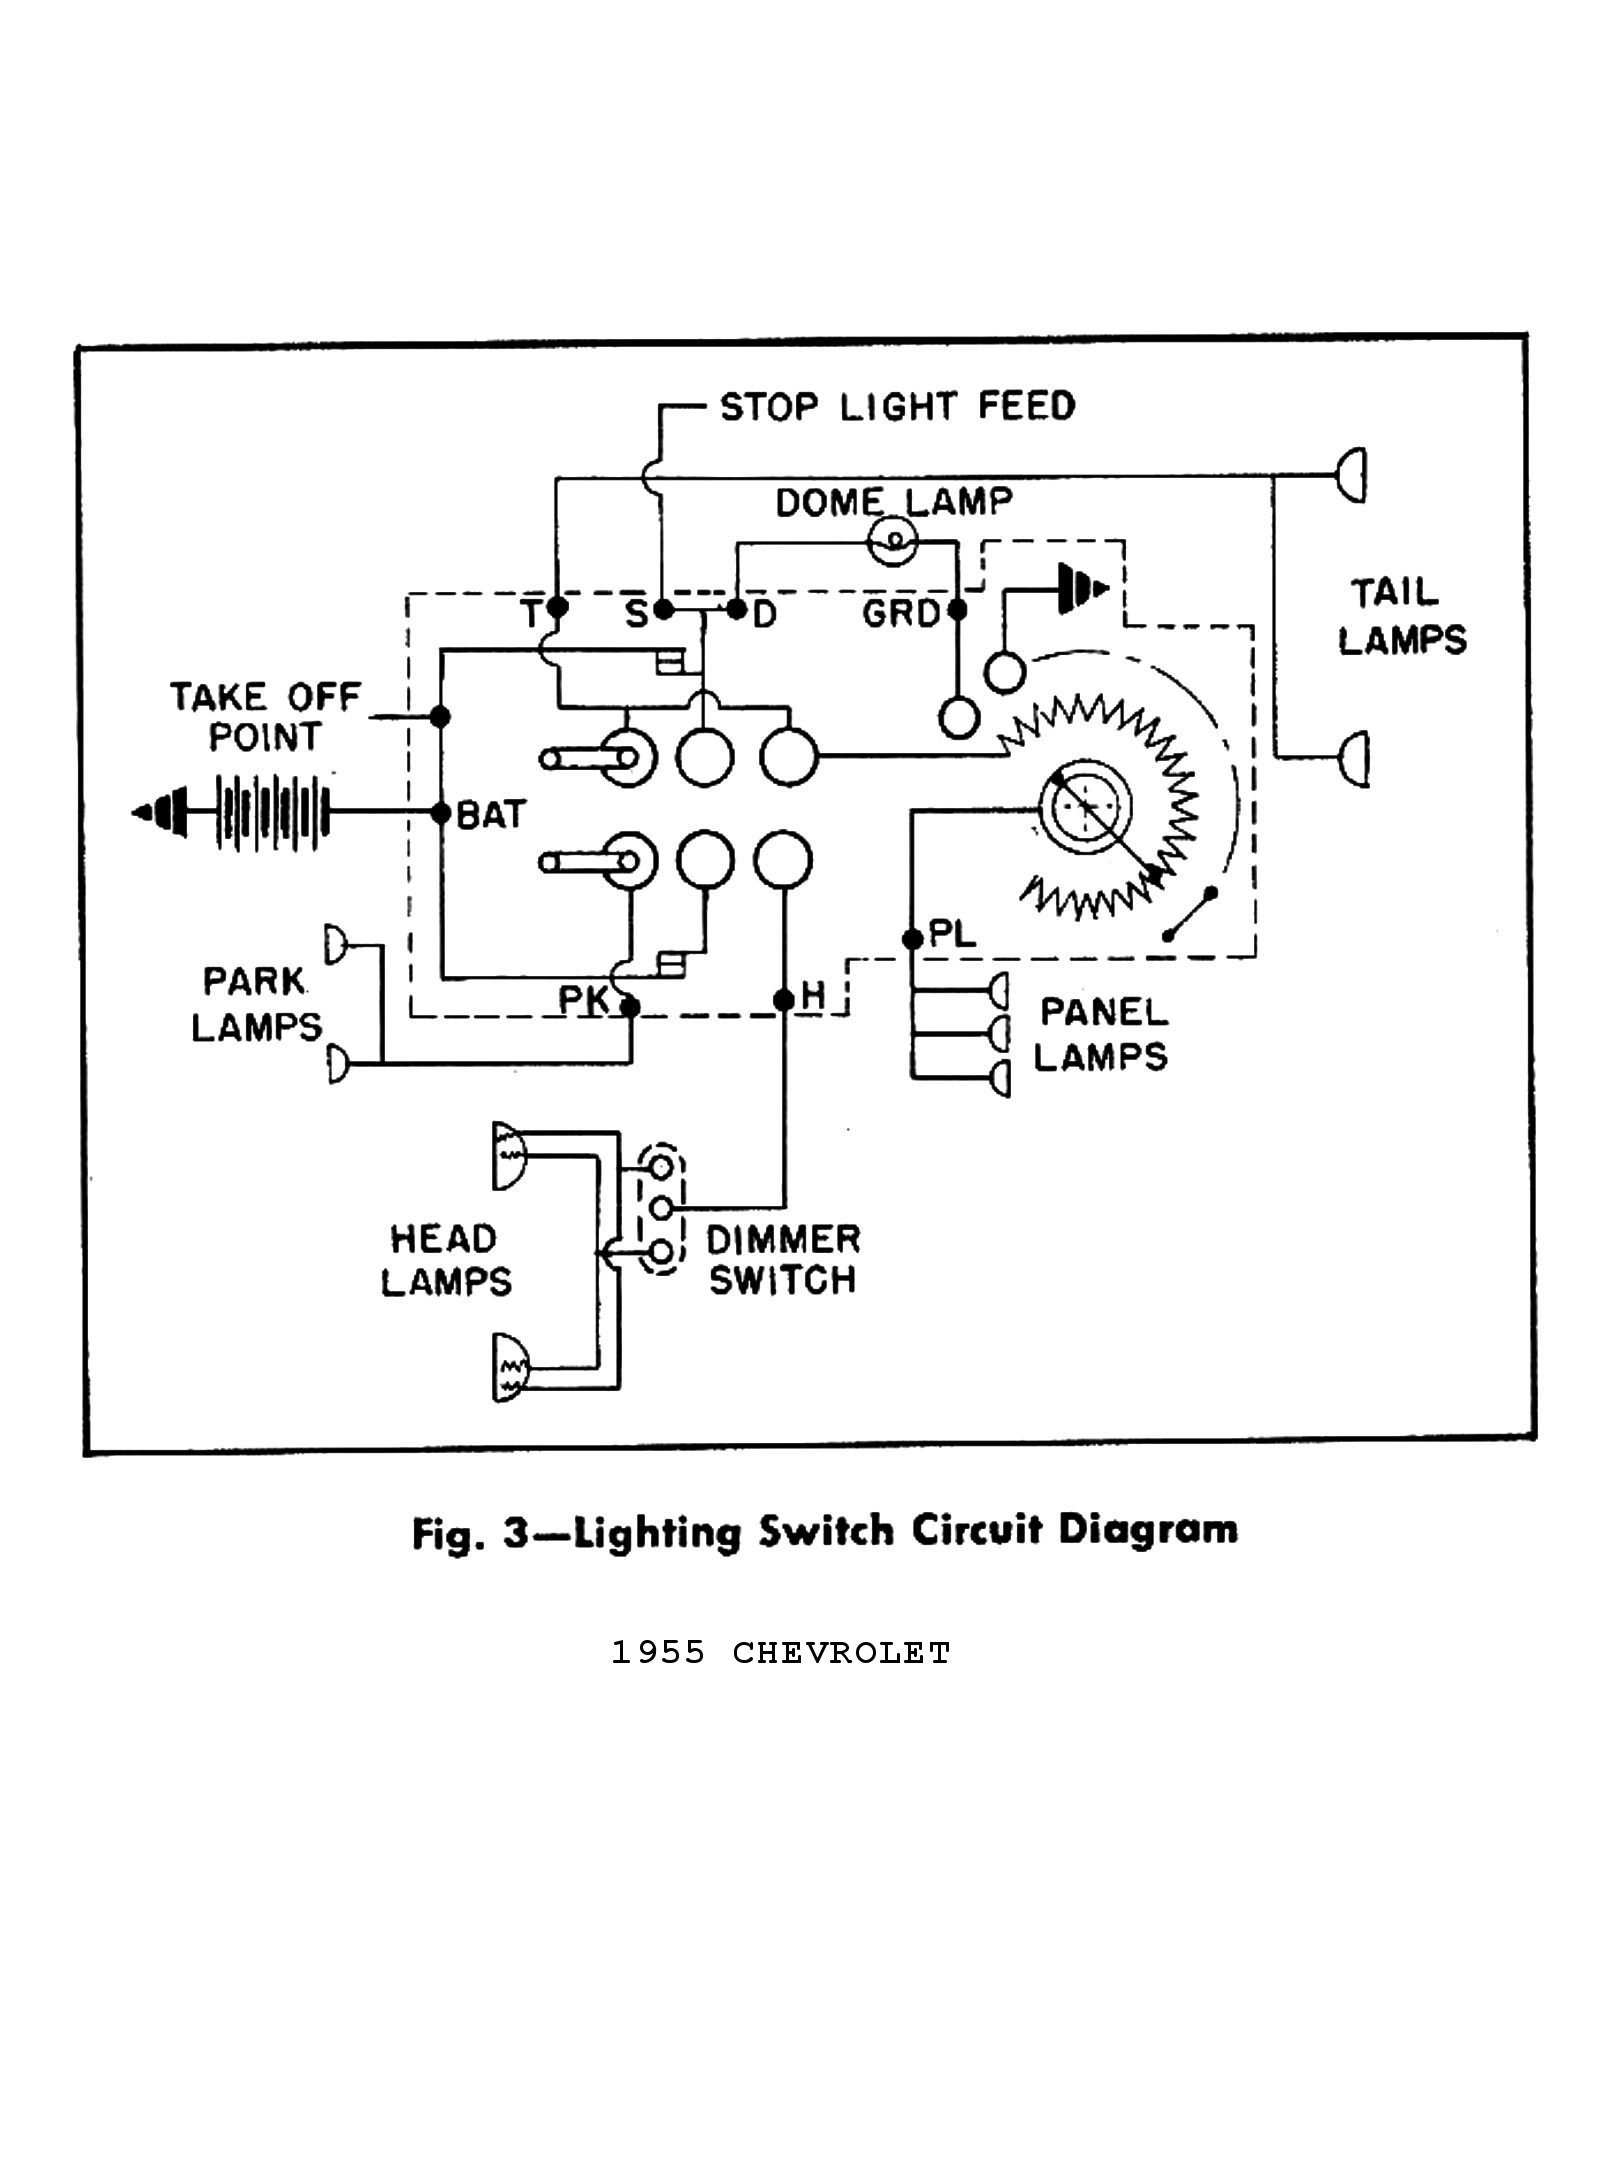 1948 Chevy Truck Fuse Box Schematic Wiring Diagrams International 4700 Panel Diagram Origin 1985